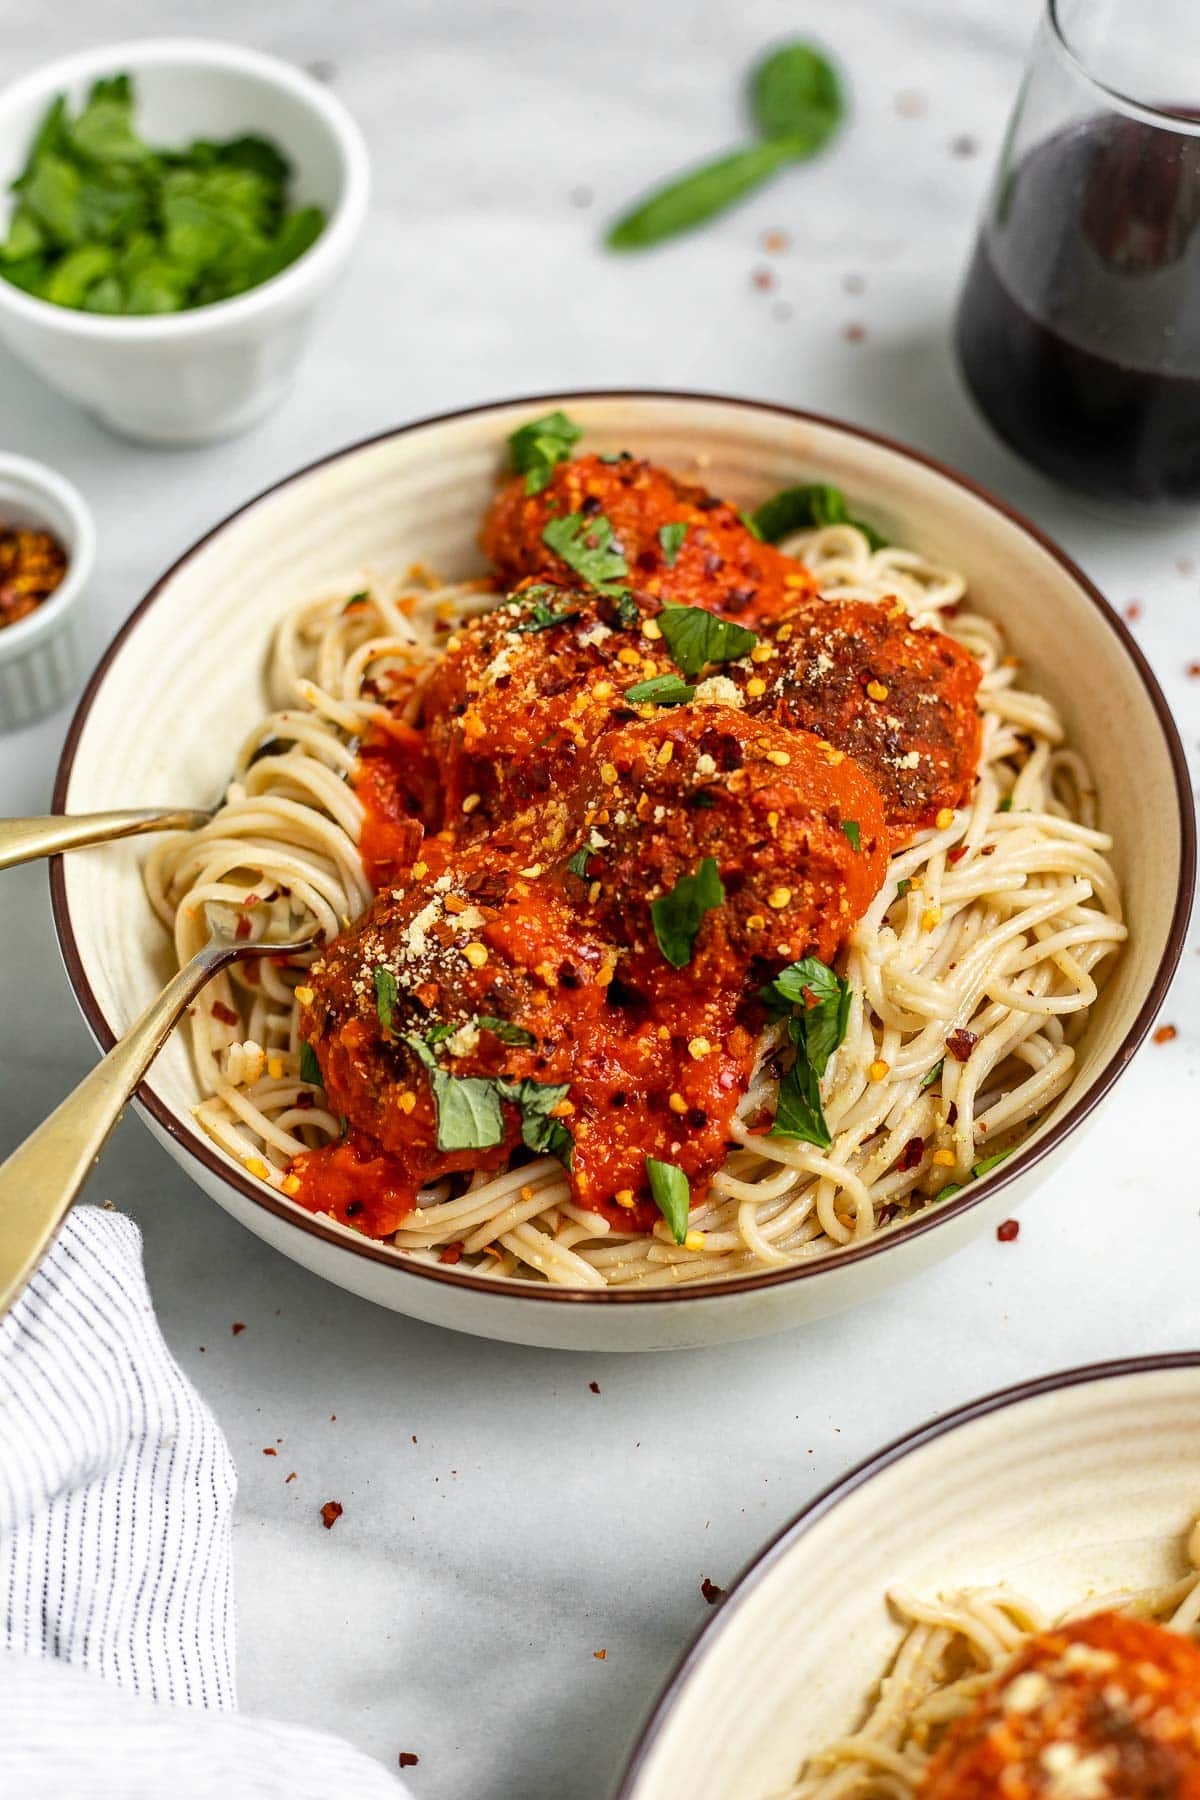 Angled view of the vegan lentil meatballs in a bowl with spaghetti.